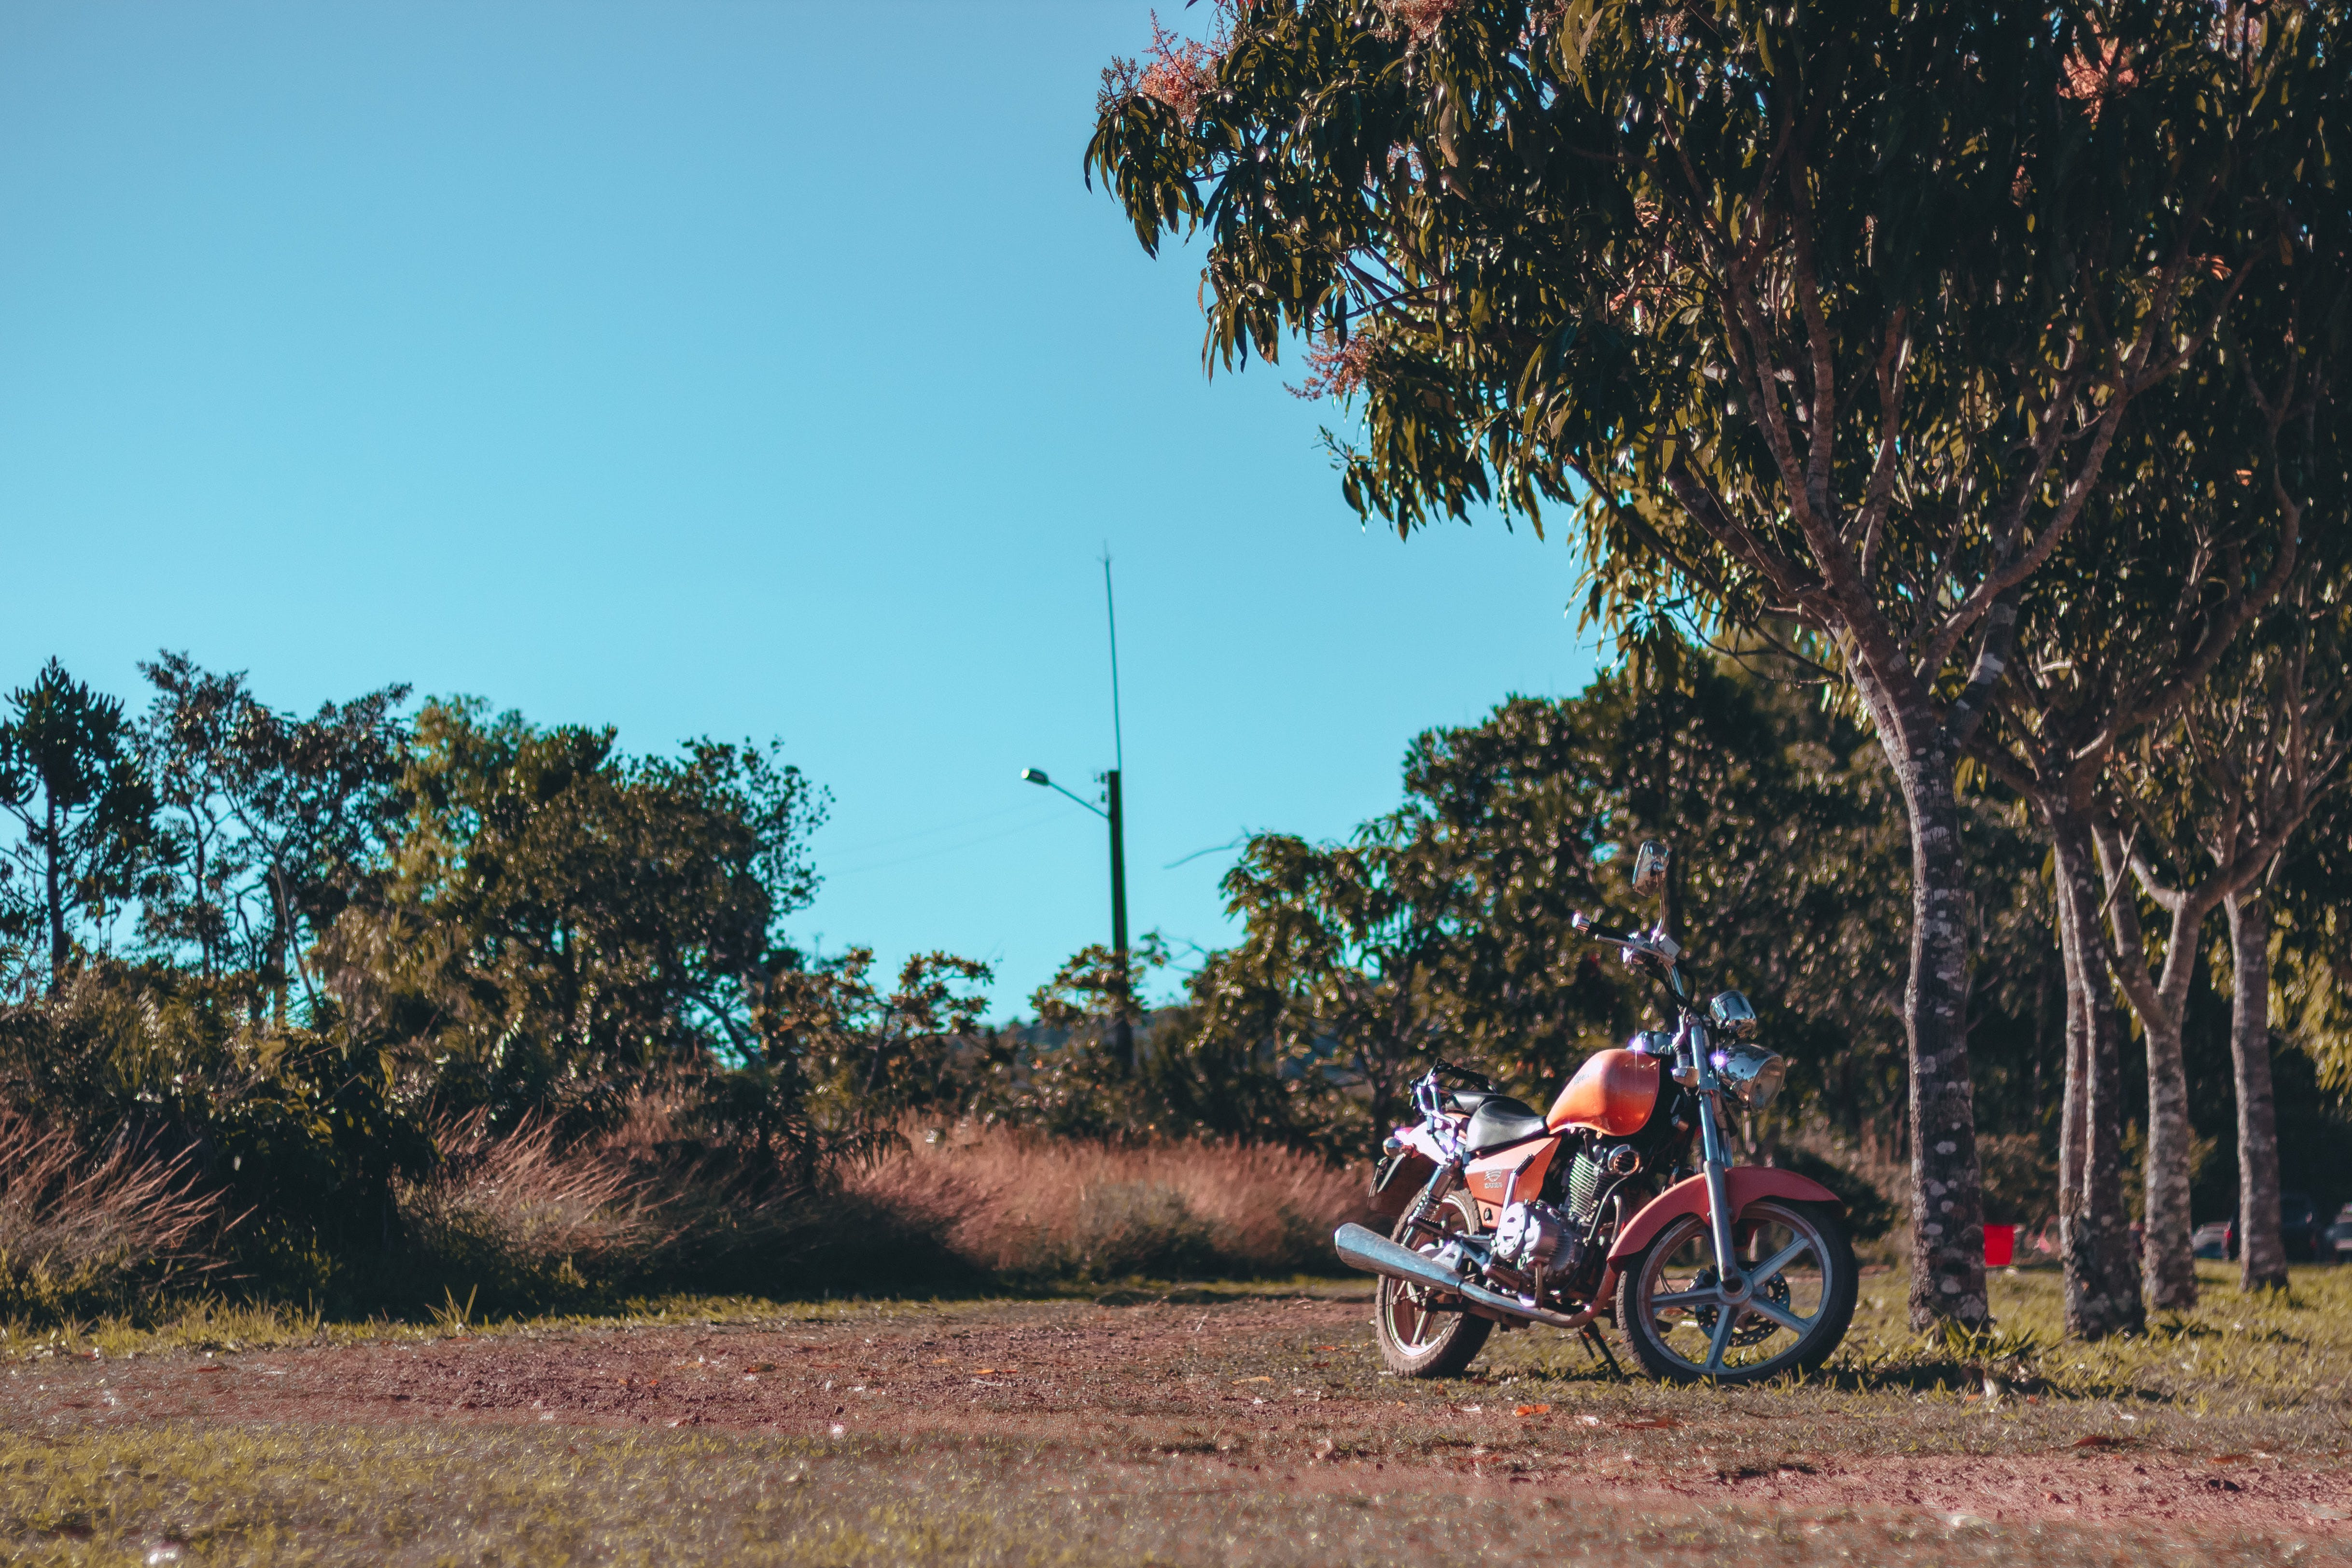 Red Motorcycle Parked Under Tree